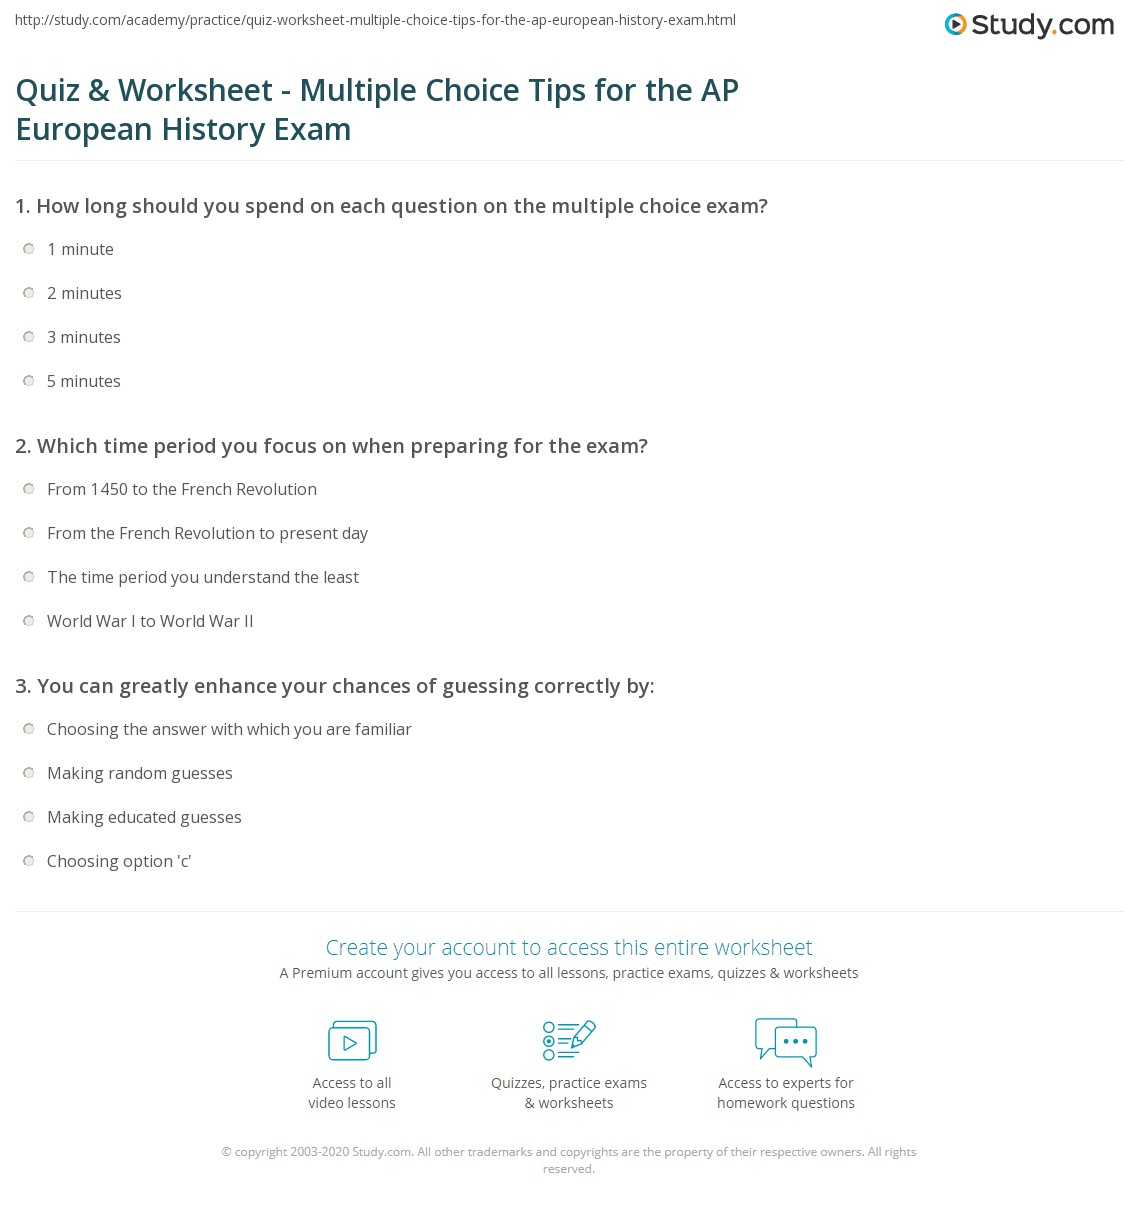 ap euro essay quiz amp worksheet multiple choice tips for the ap european print mastering multiple choice questions on